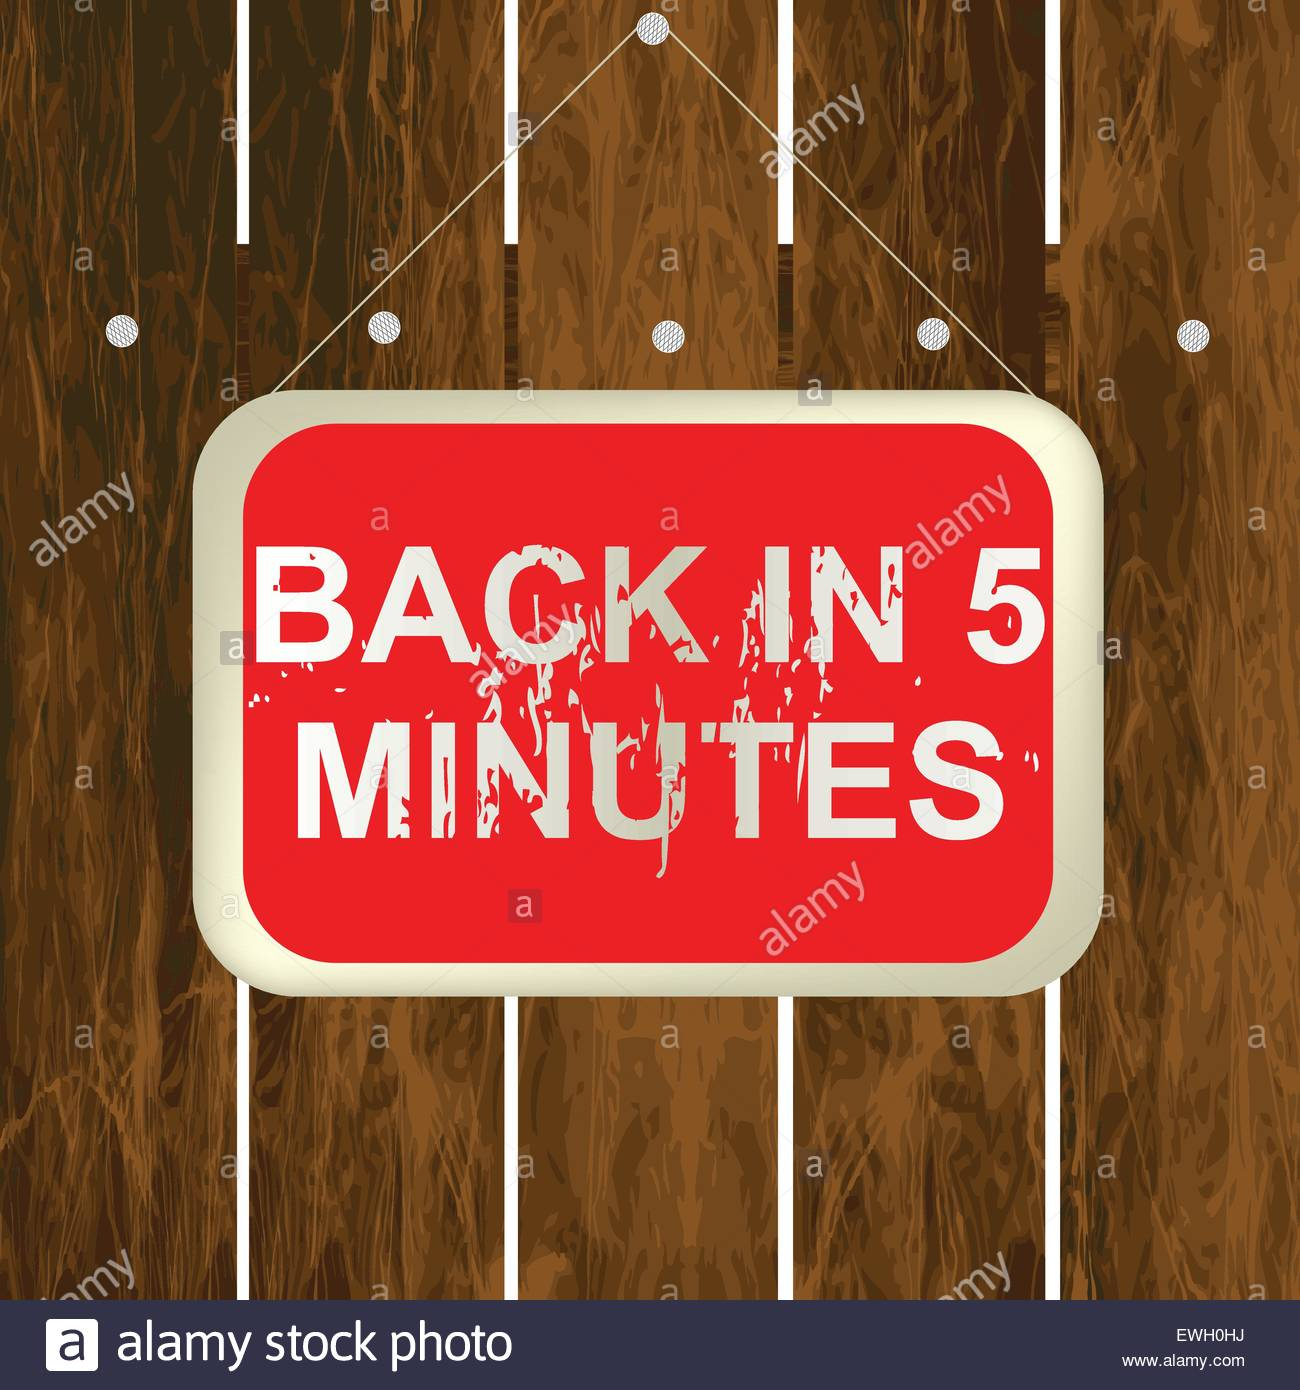 Back in 5 minutes sign hanging on a wooden fence - Stock Vector